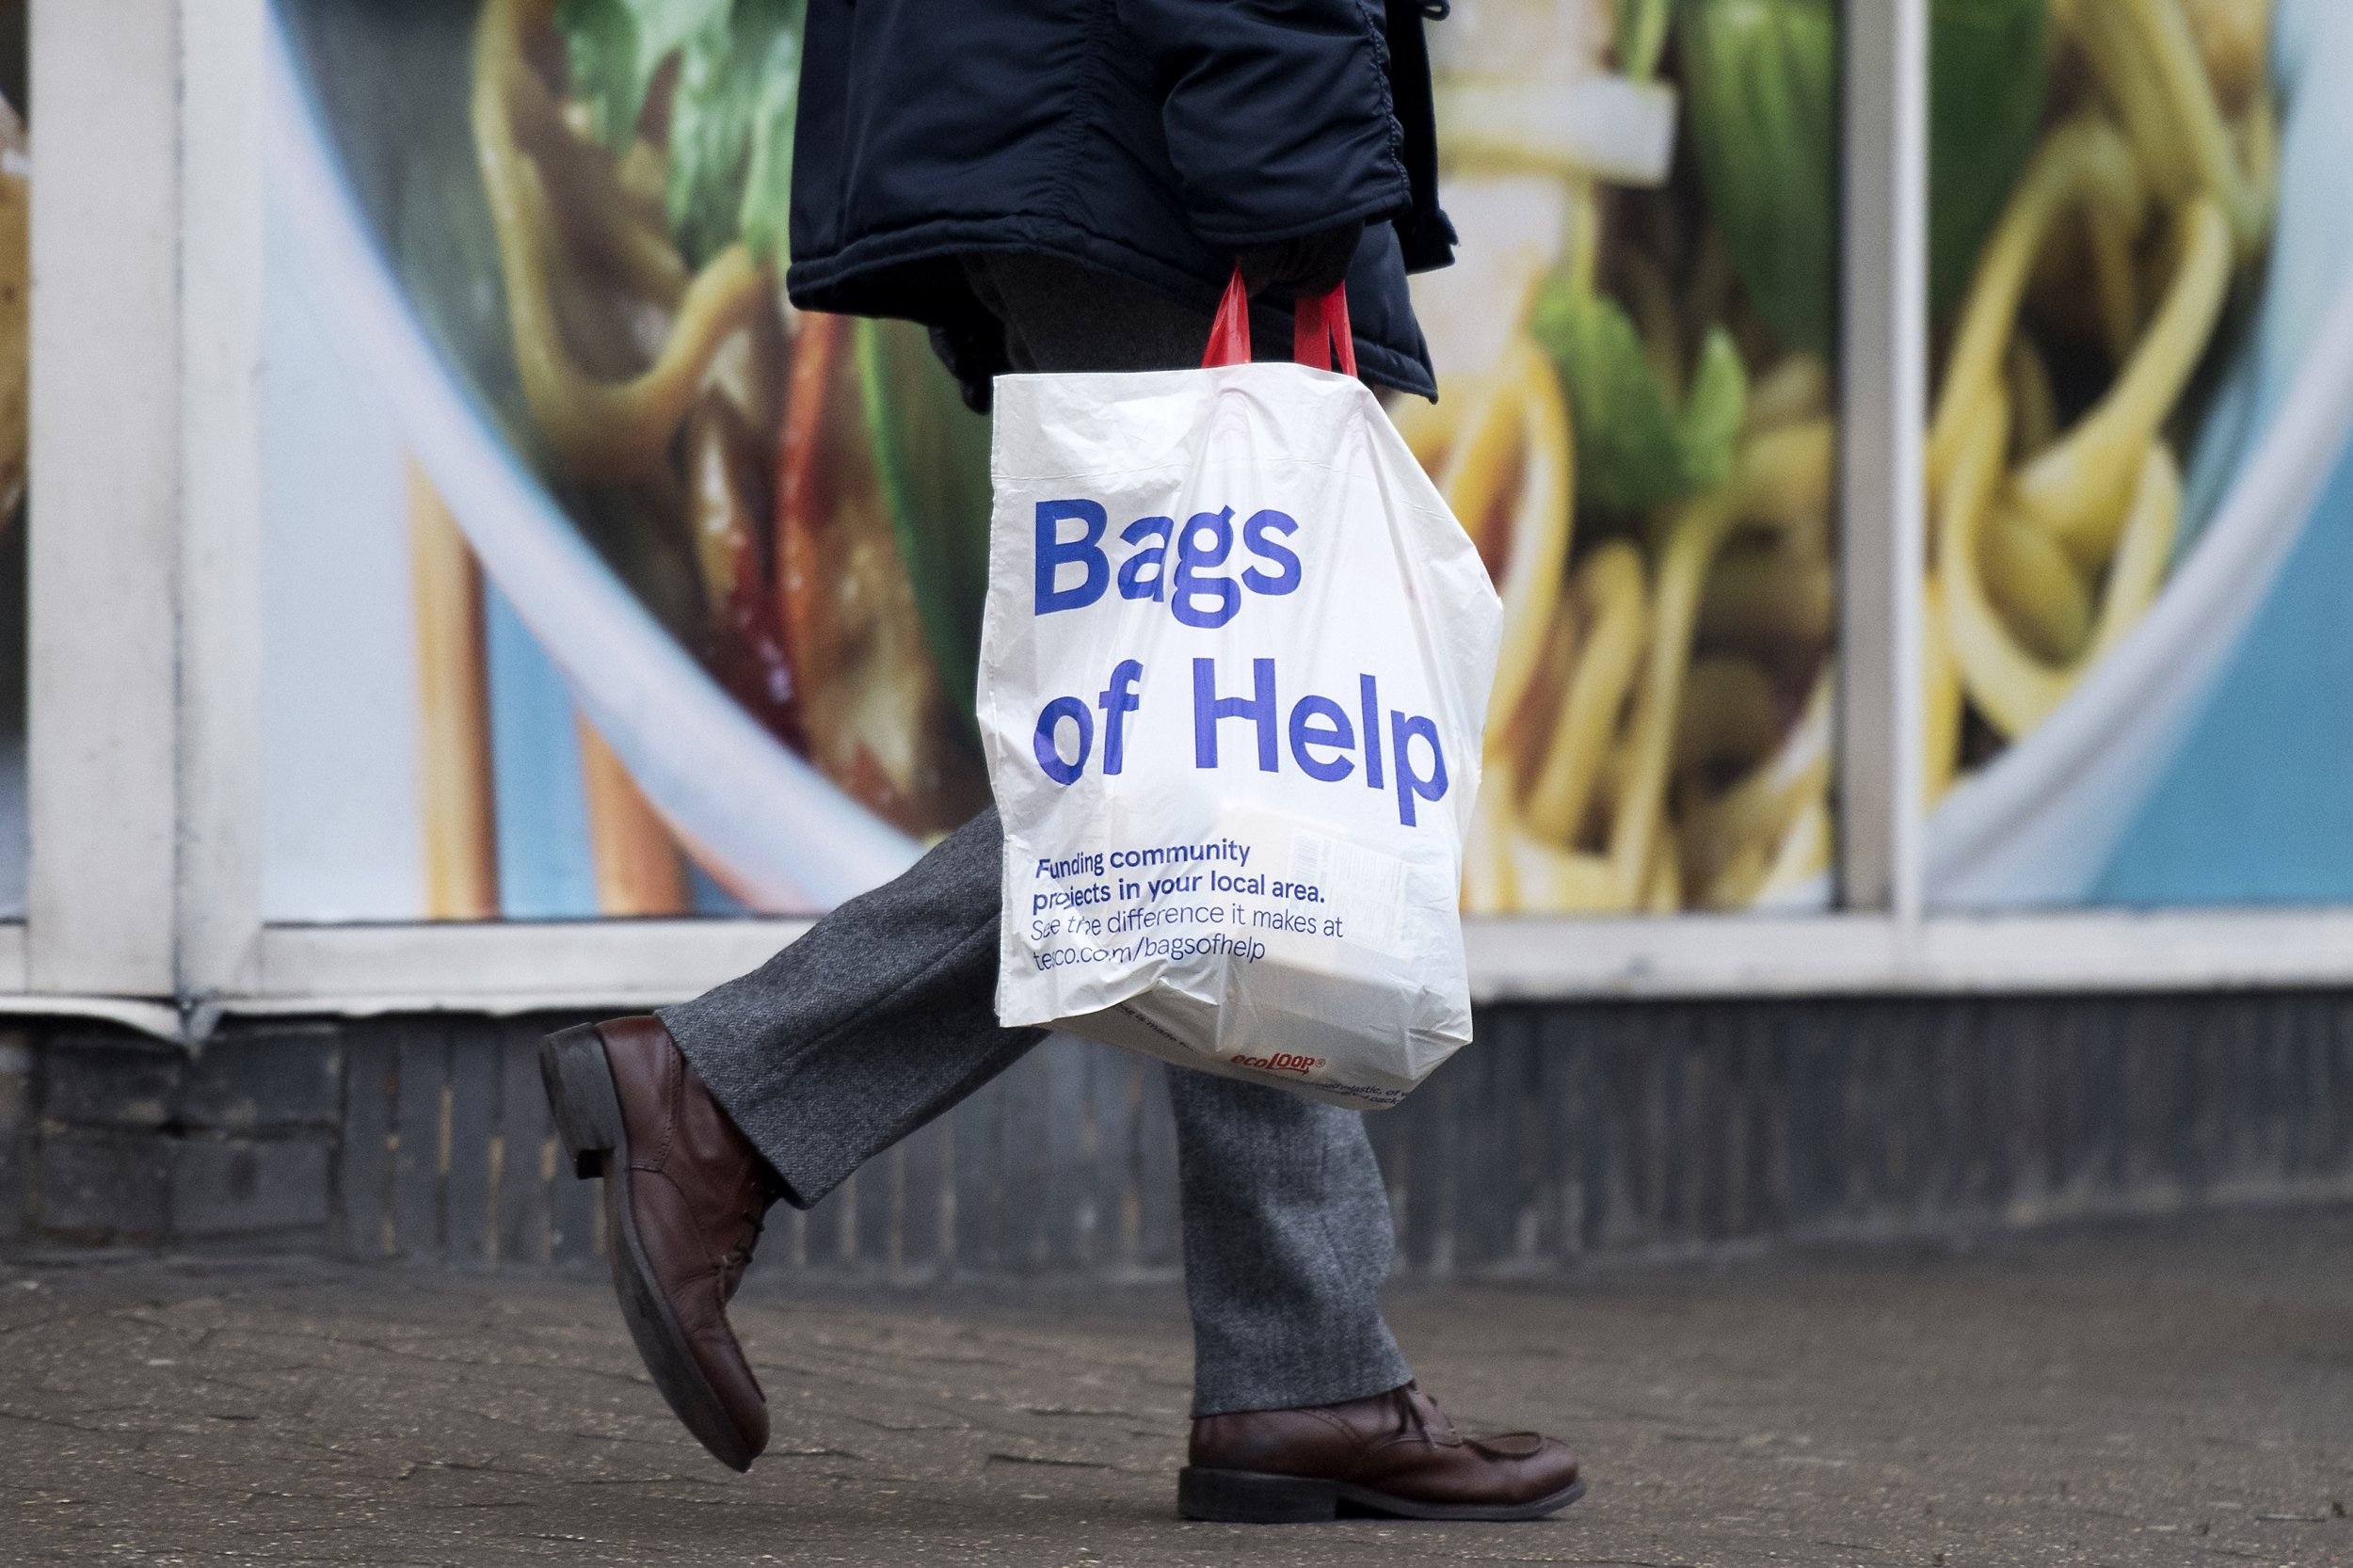 A man leaves with his goods in a plastic carrier bag after shopping at a branch of Tesco in south London, on January 9, 2018. / AFP PHOTO / Justin TALLIS (Photo credit should read JUSTIN TALLIS/AFP/Getty Images)